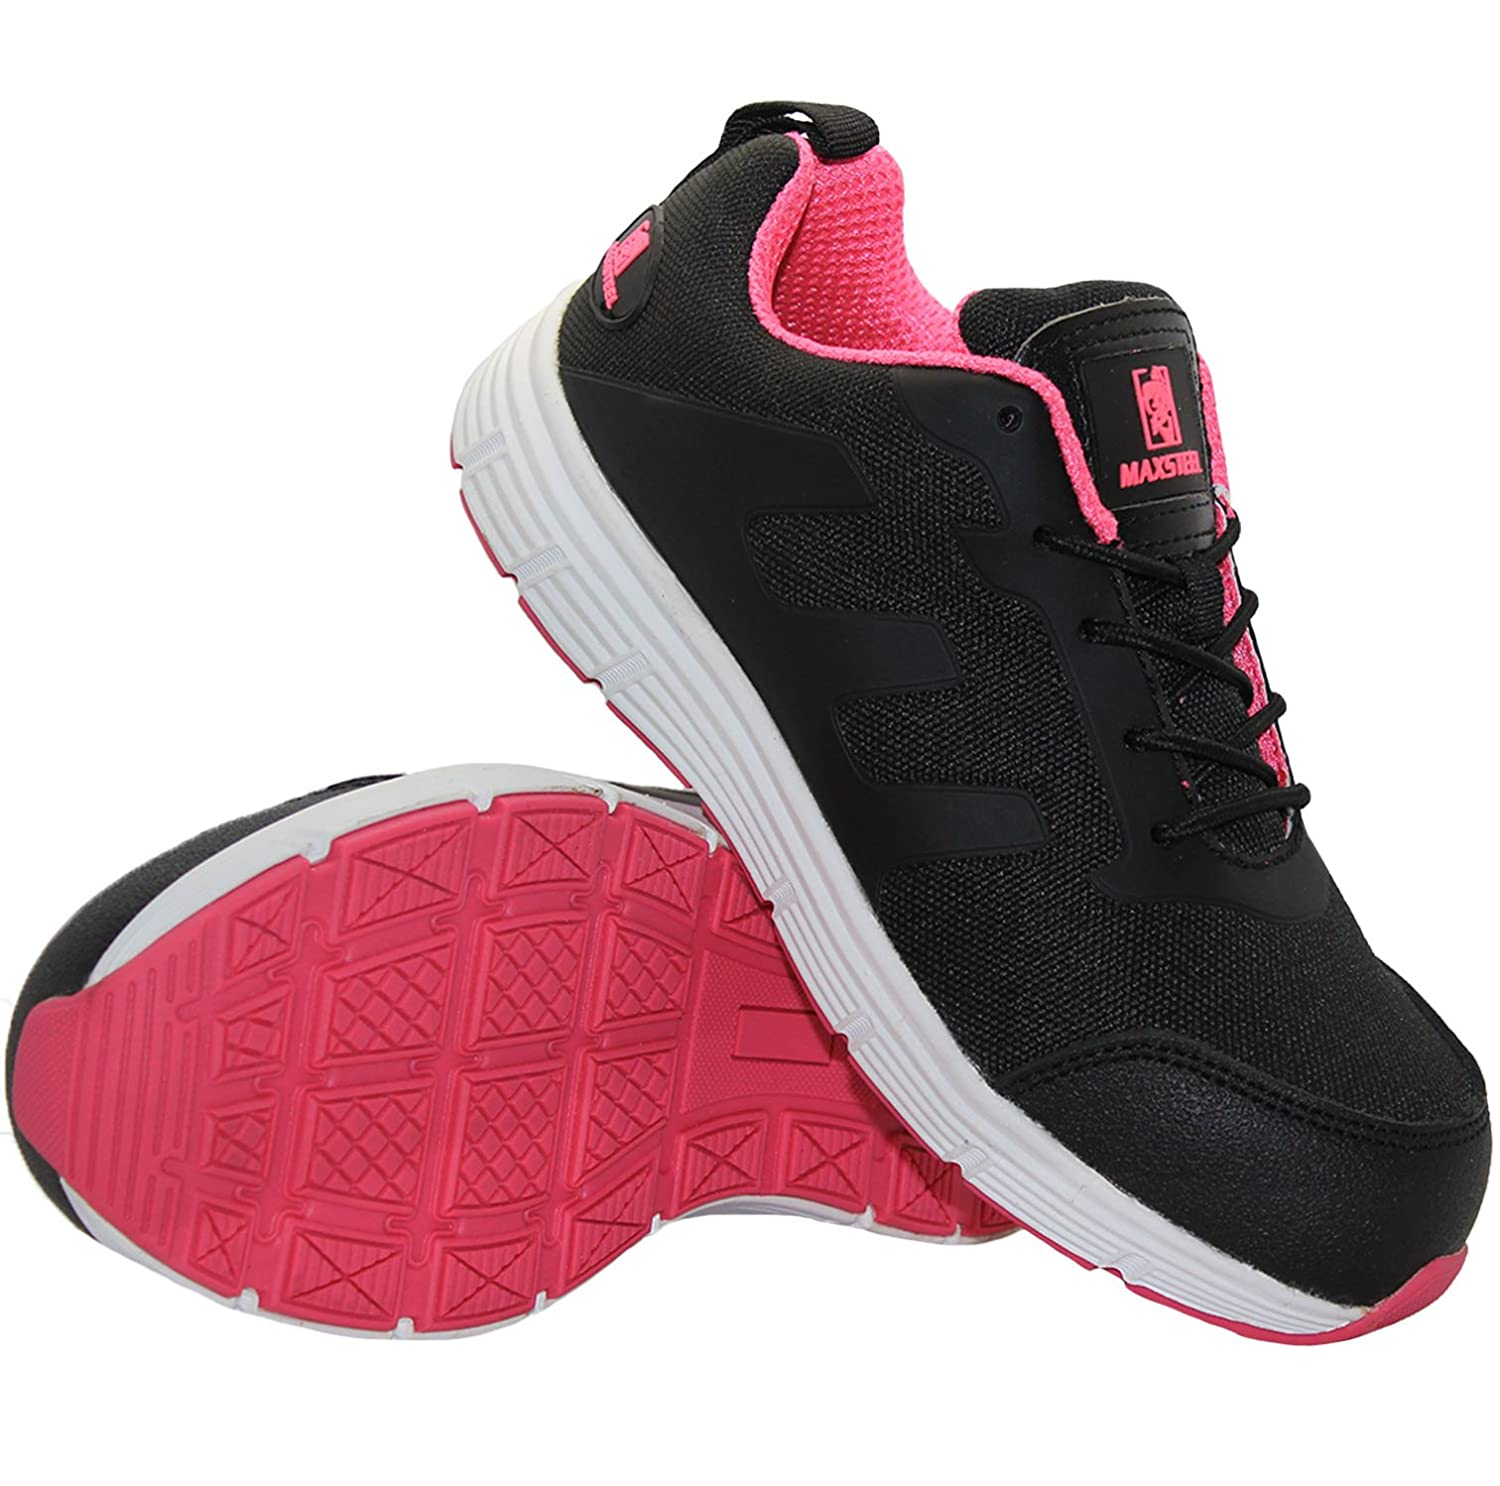 5e2879cd255 Ladies MAXSTEEL Ultra Lightweight Safety Shoes Steel Toe Cap Womens Work  Boots Trainers